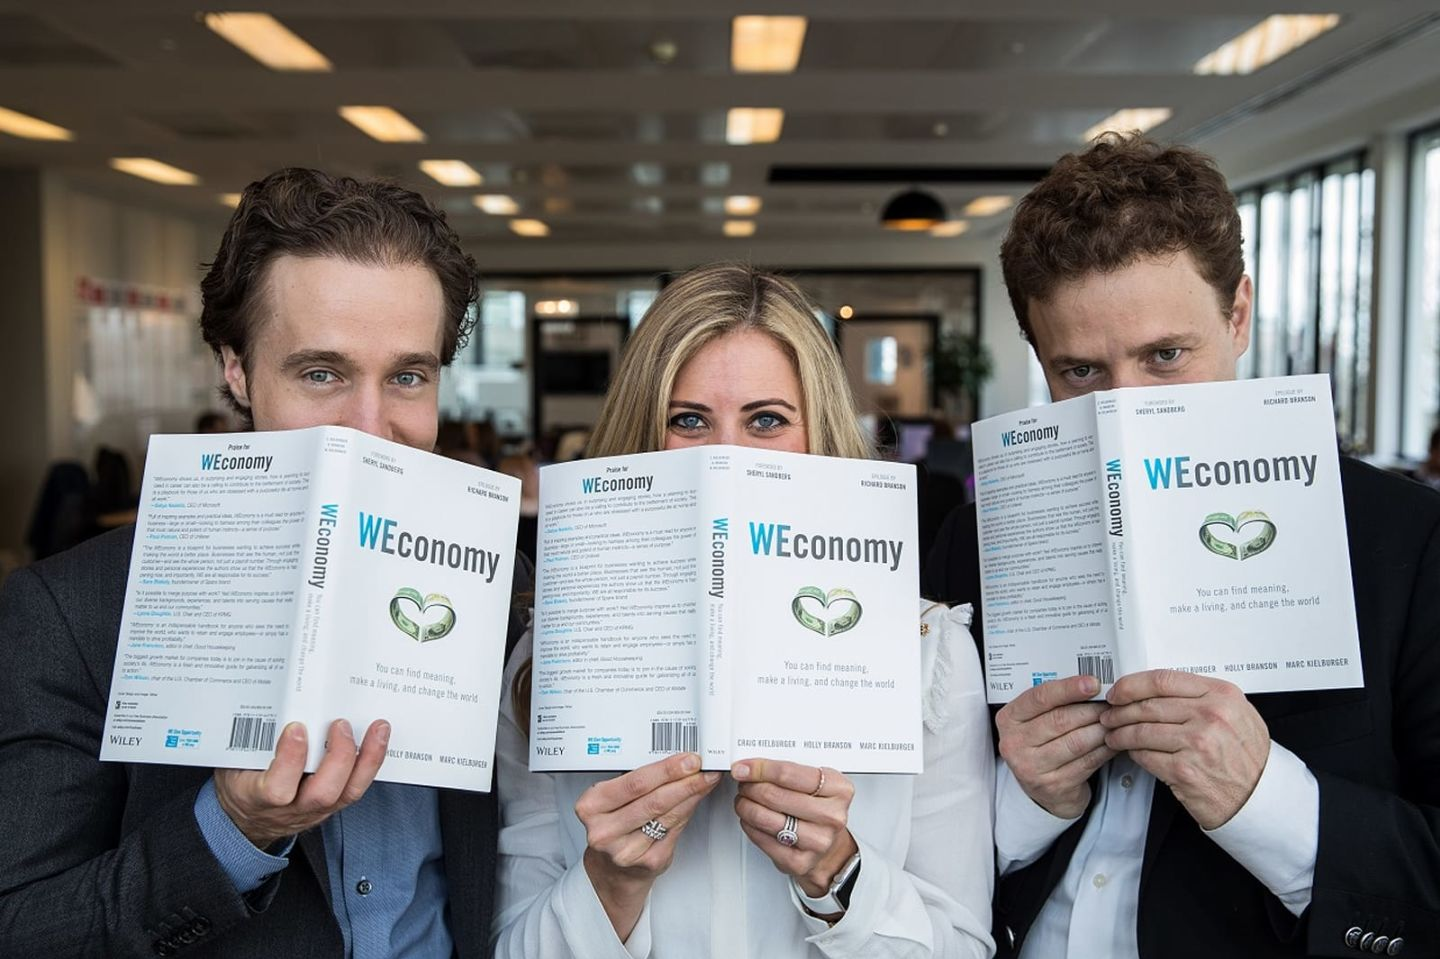 Holly Branson next to two men with the book Weconomy in front of them